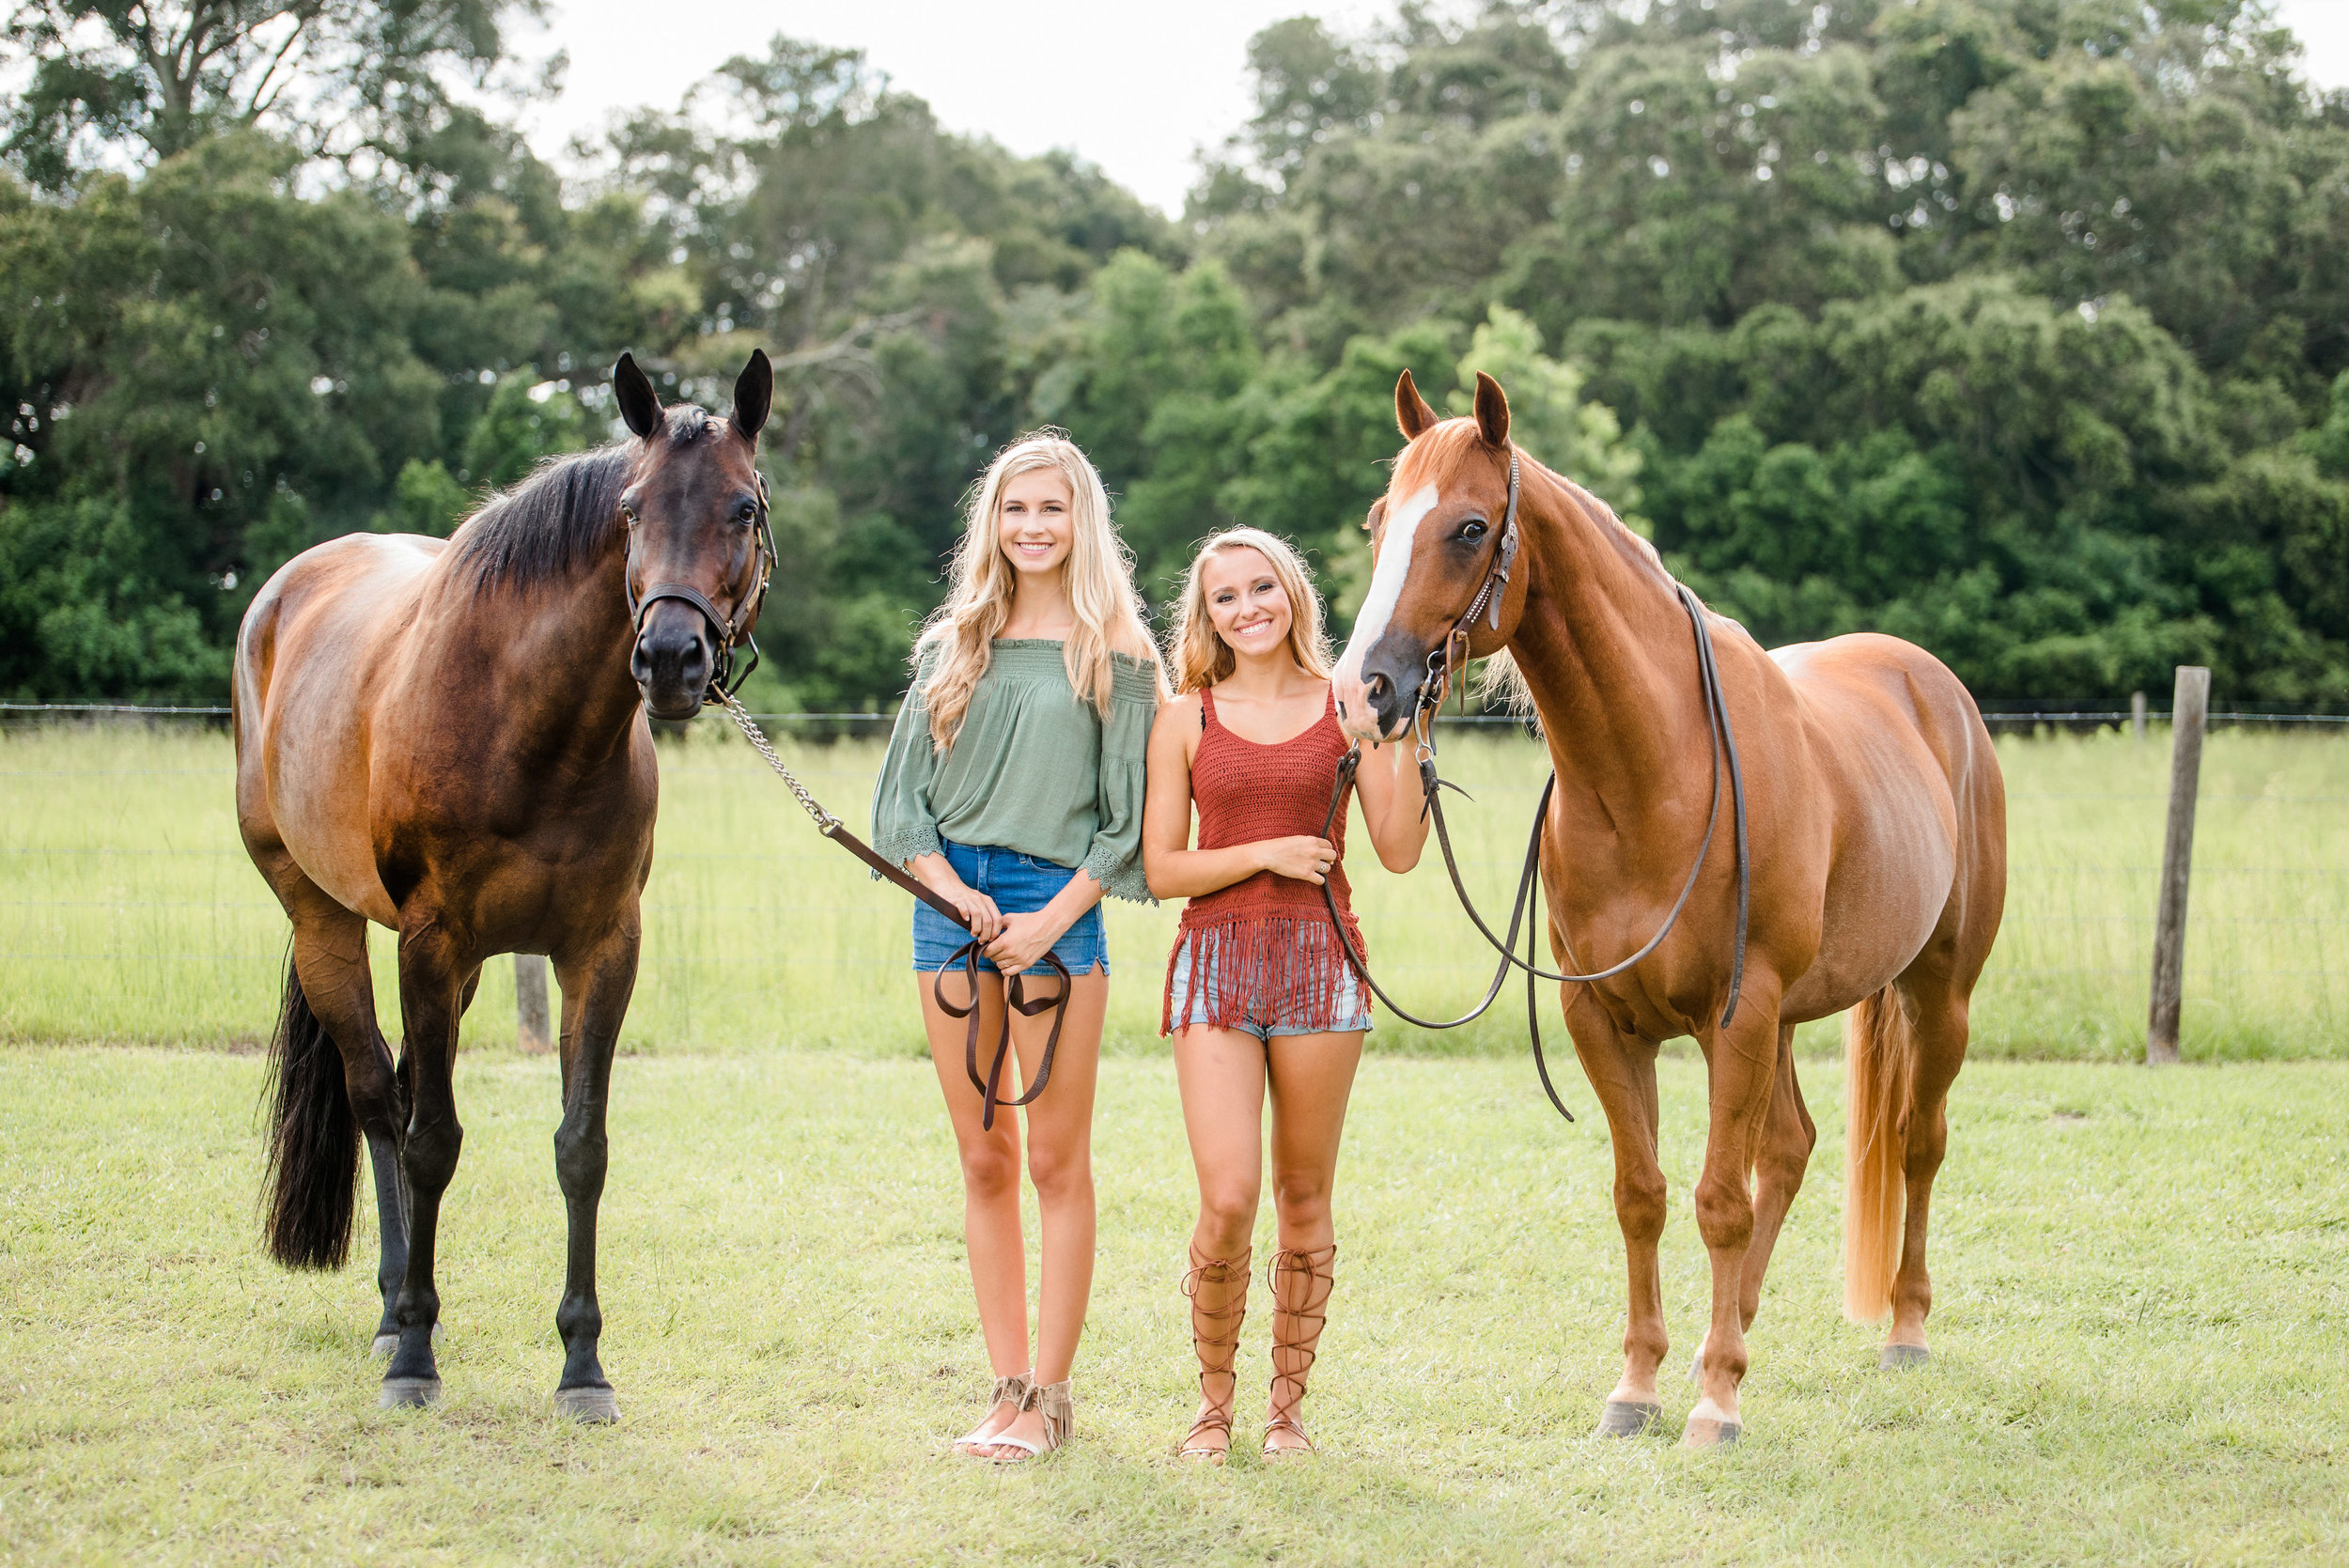 Lauren and Skylar have known each other nearly their whole lives. It was such a joy photographing them and their two horses. You can view Skylar's photos    here .